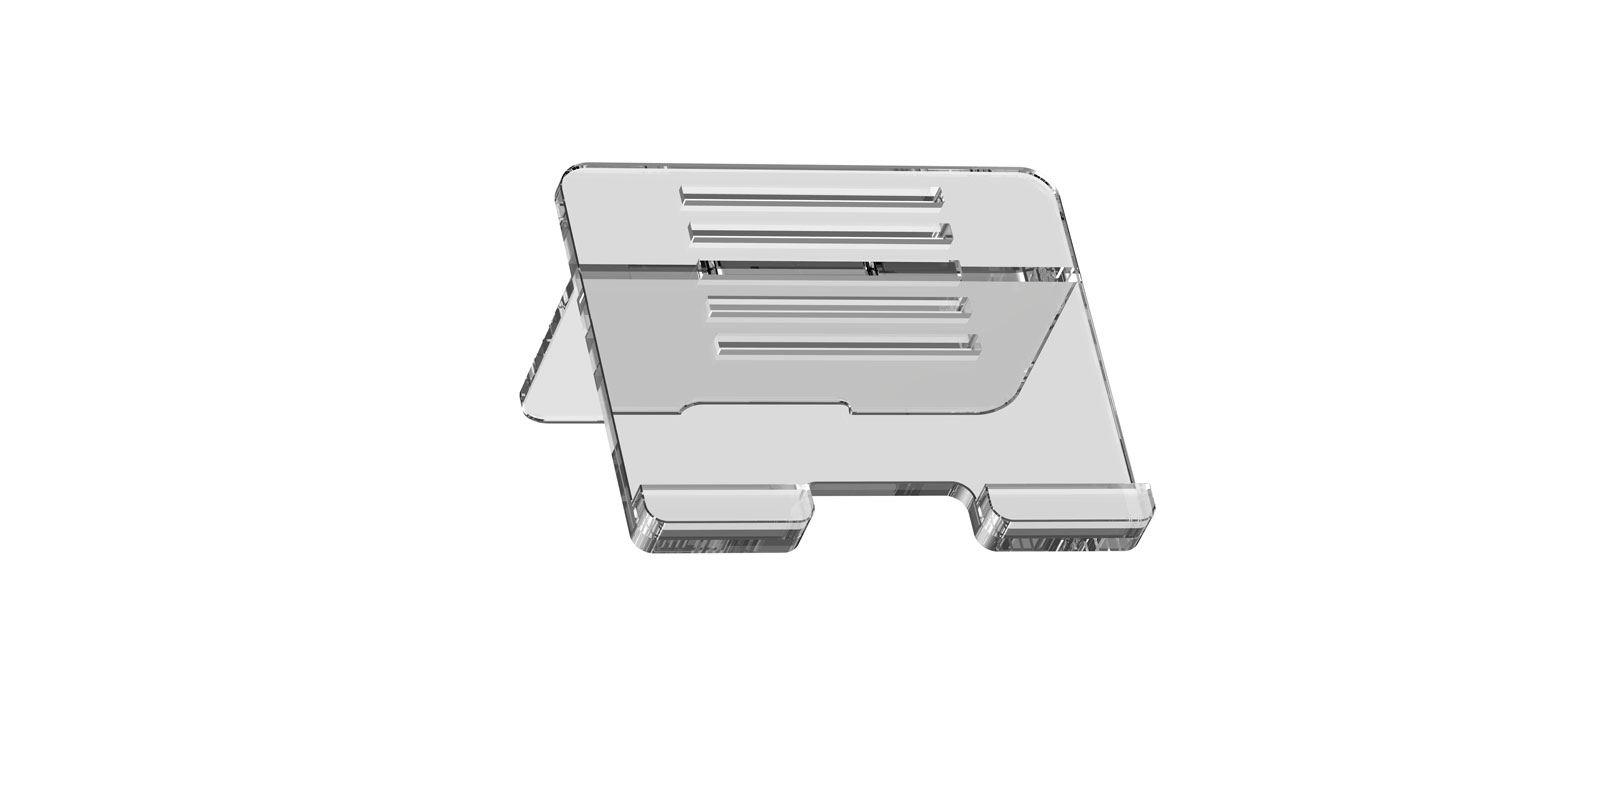 FB02201_MAIN_Tablet-holder.jpg